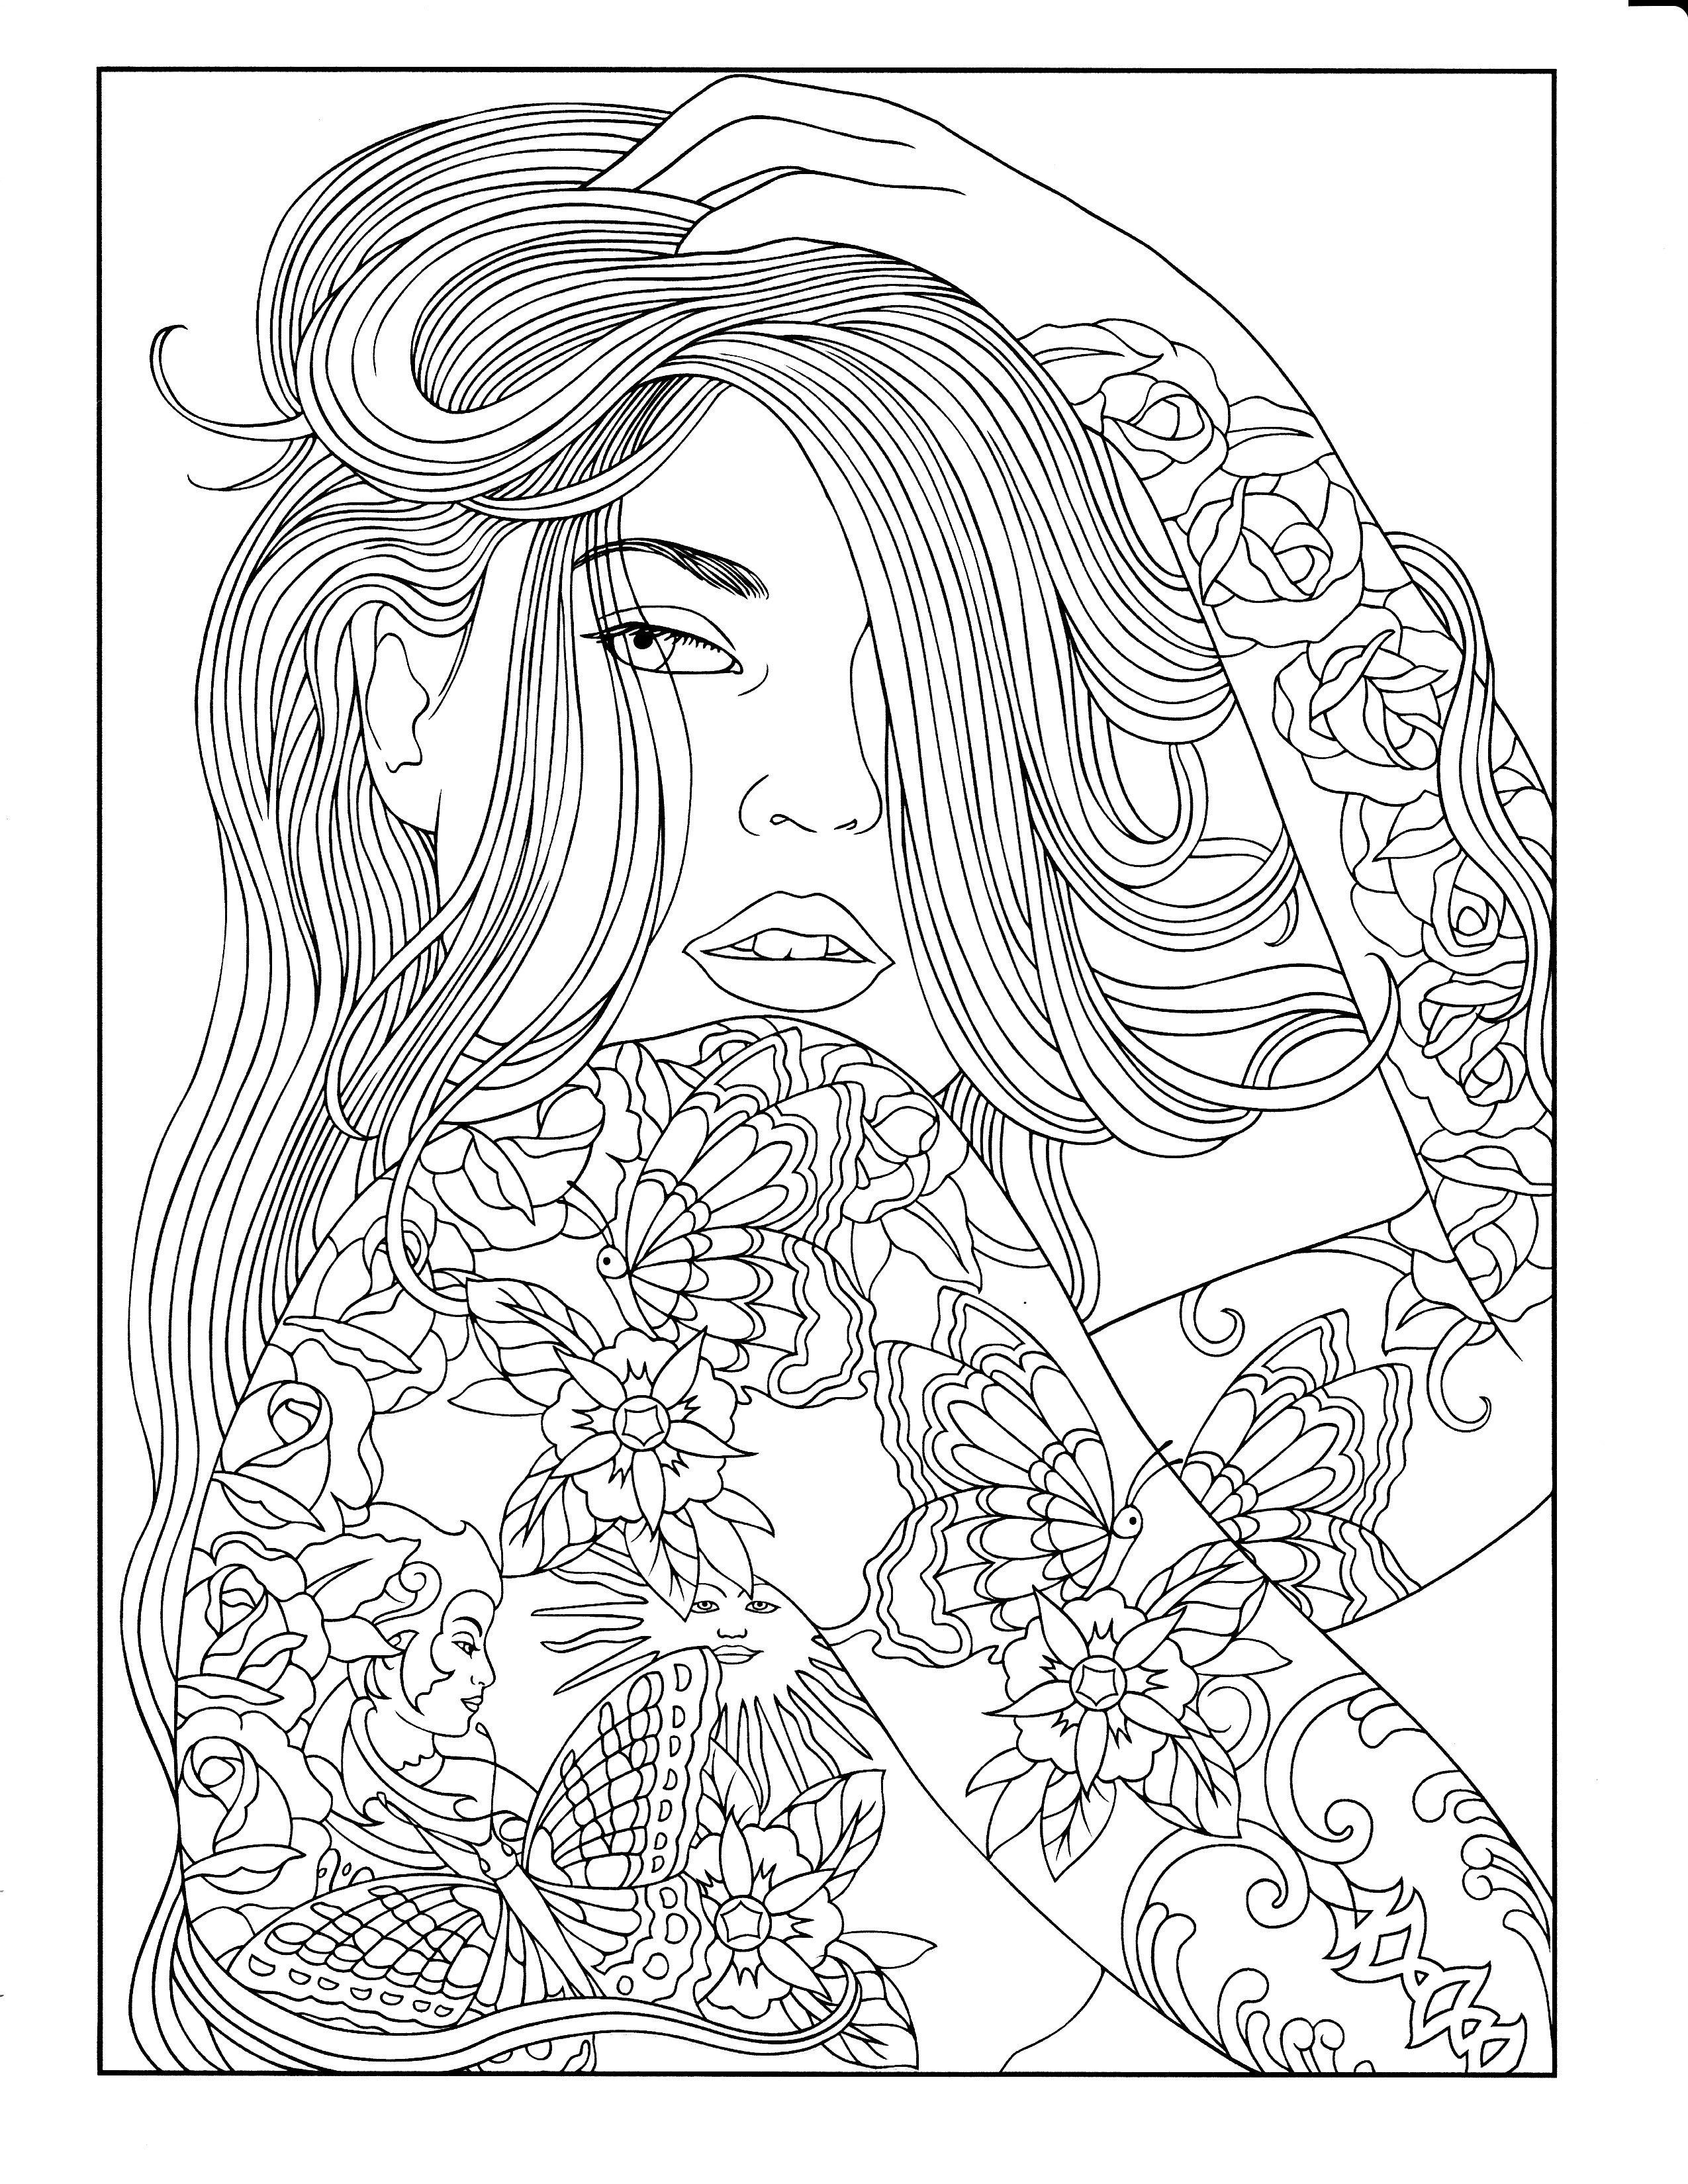 Pin By Finding Beauty In Life On Calming Zentangle Art People